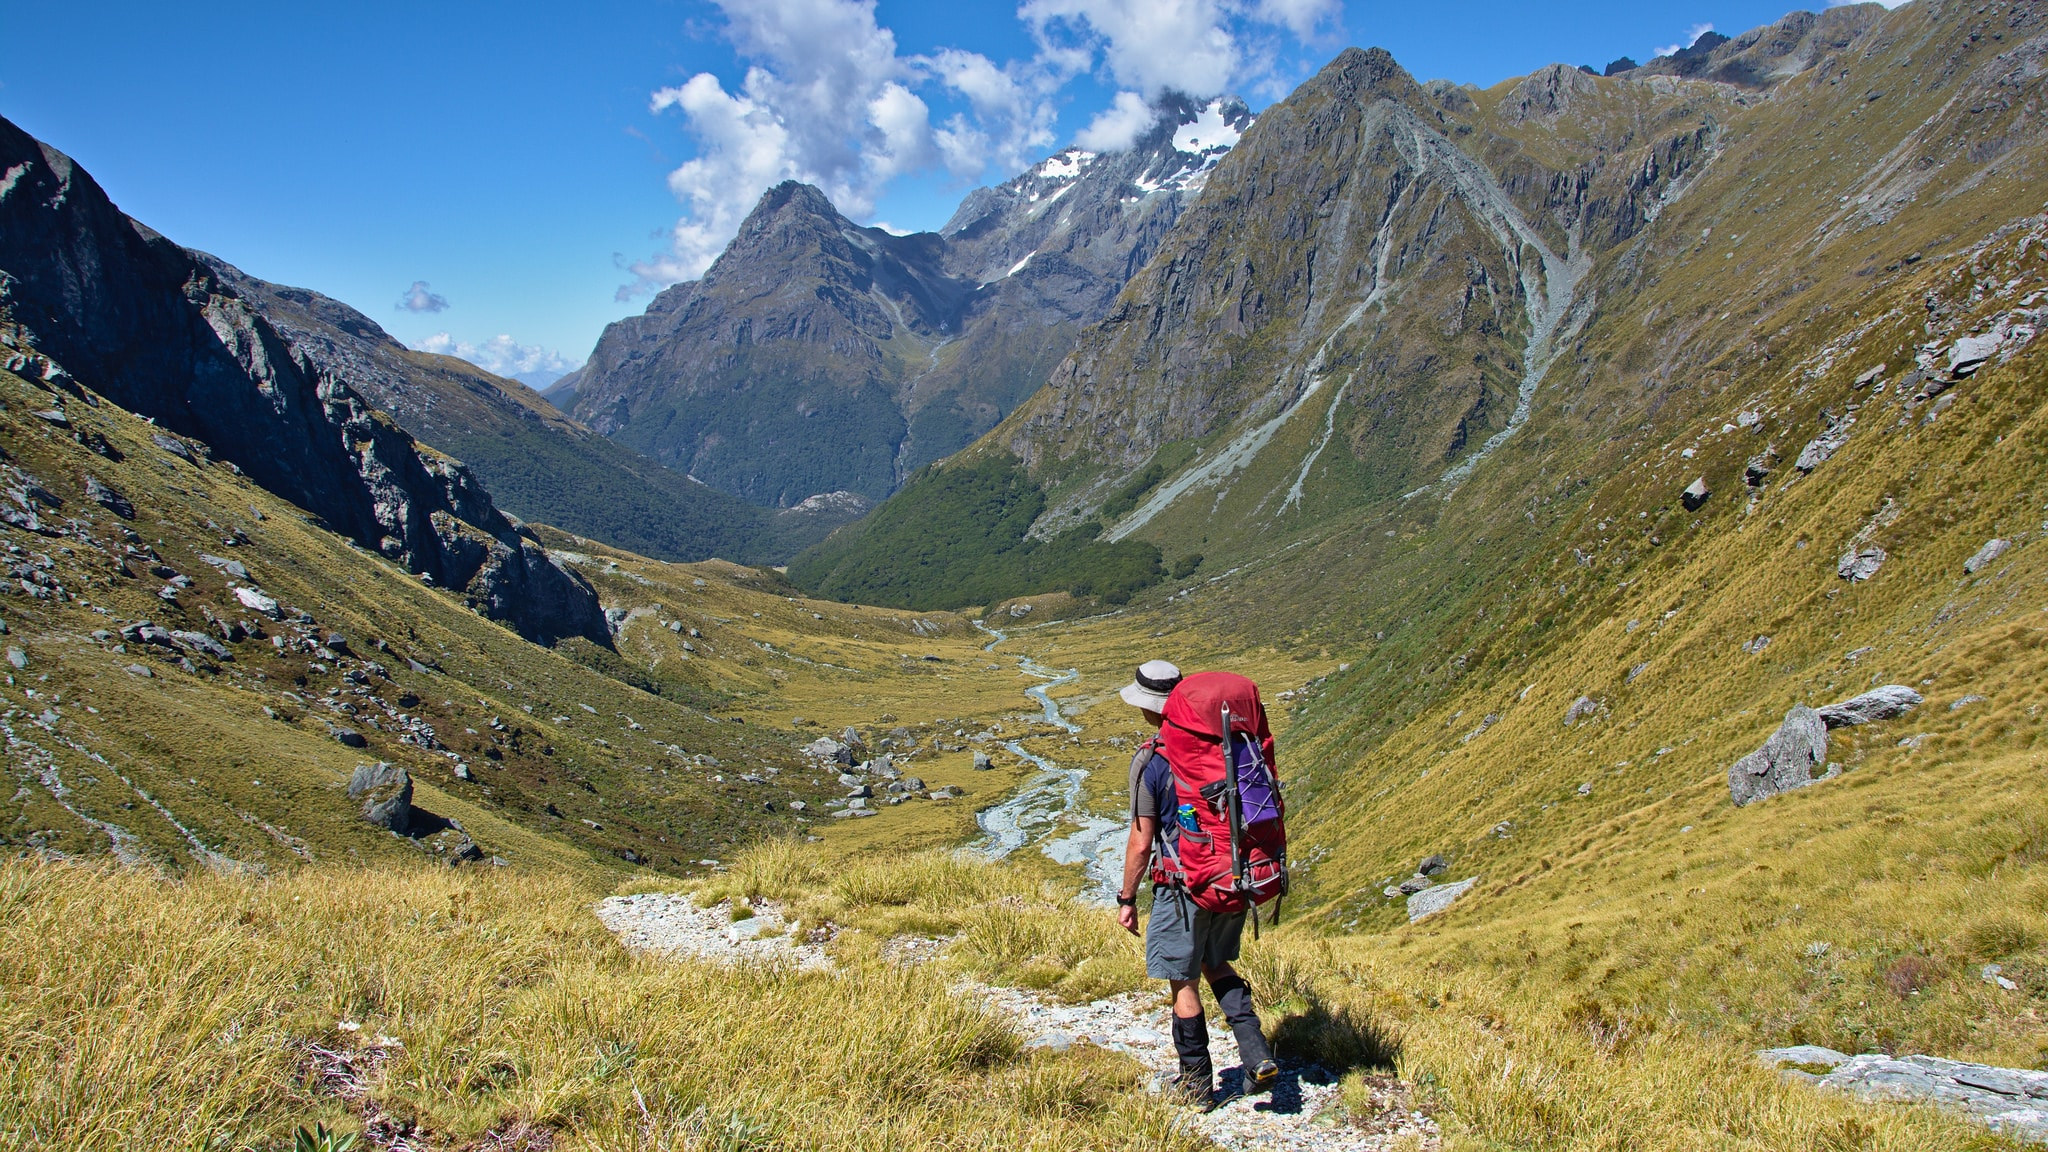 The Ultimate Backpacking Guide To New Zealand